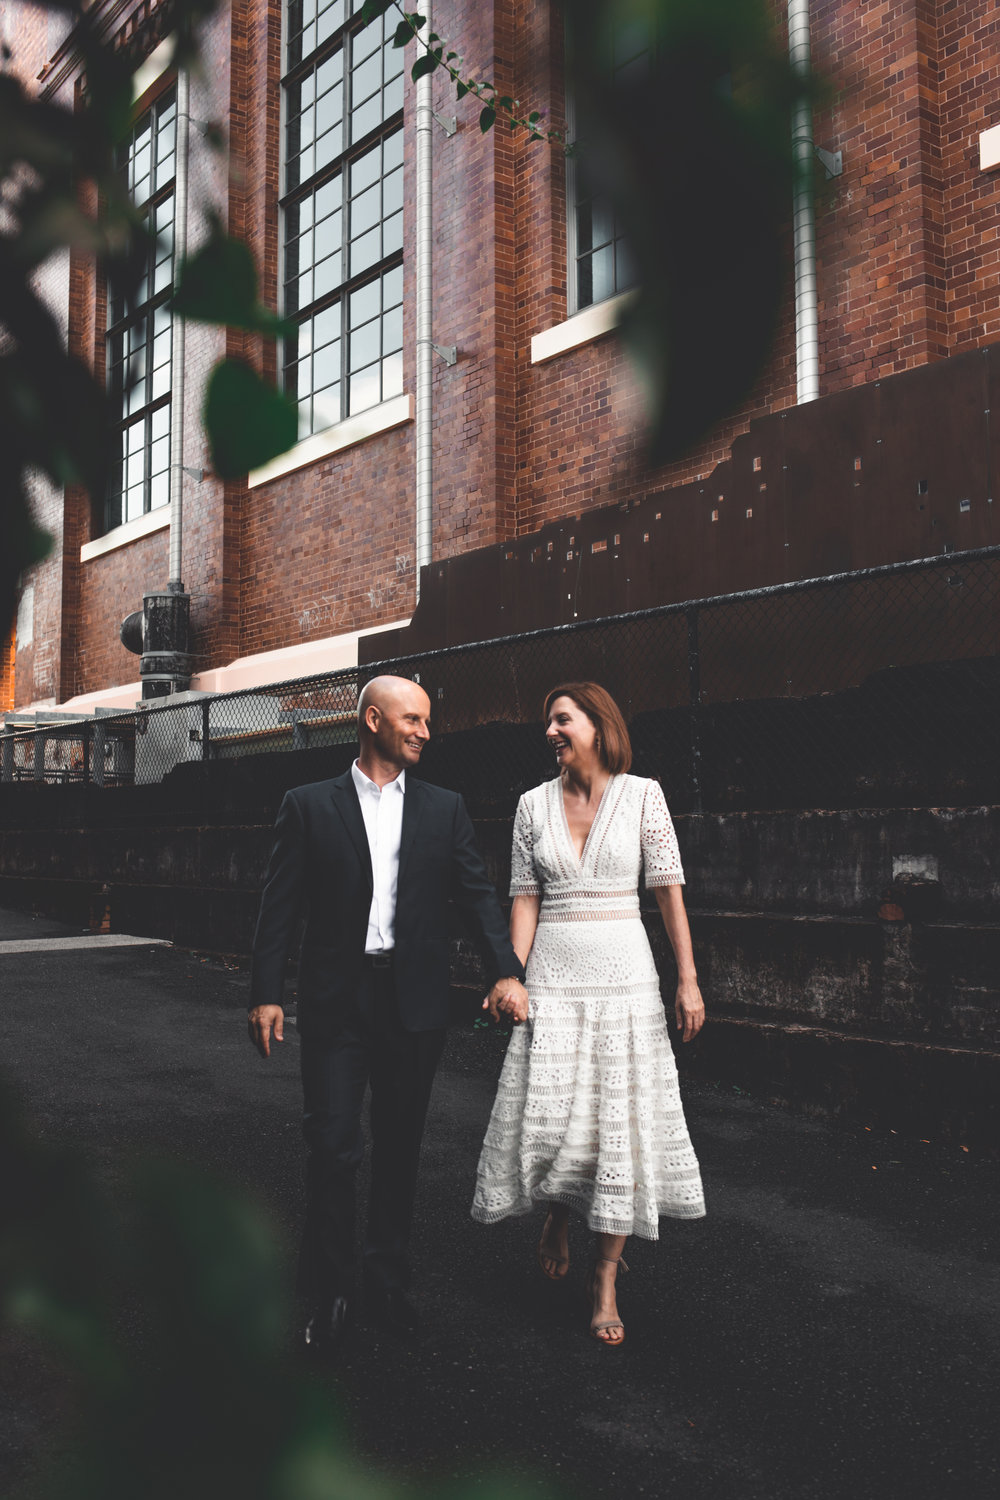 KT + KARL | 21 APRIL 2018 (76 of 506)-adj.jpg